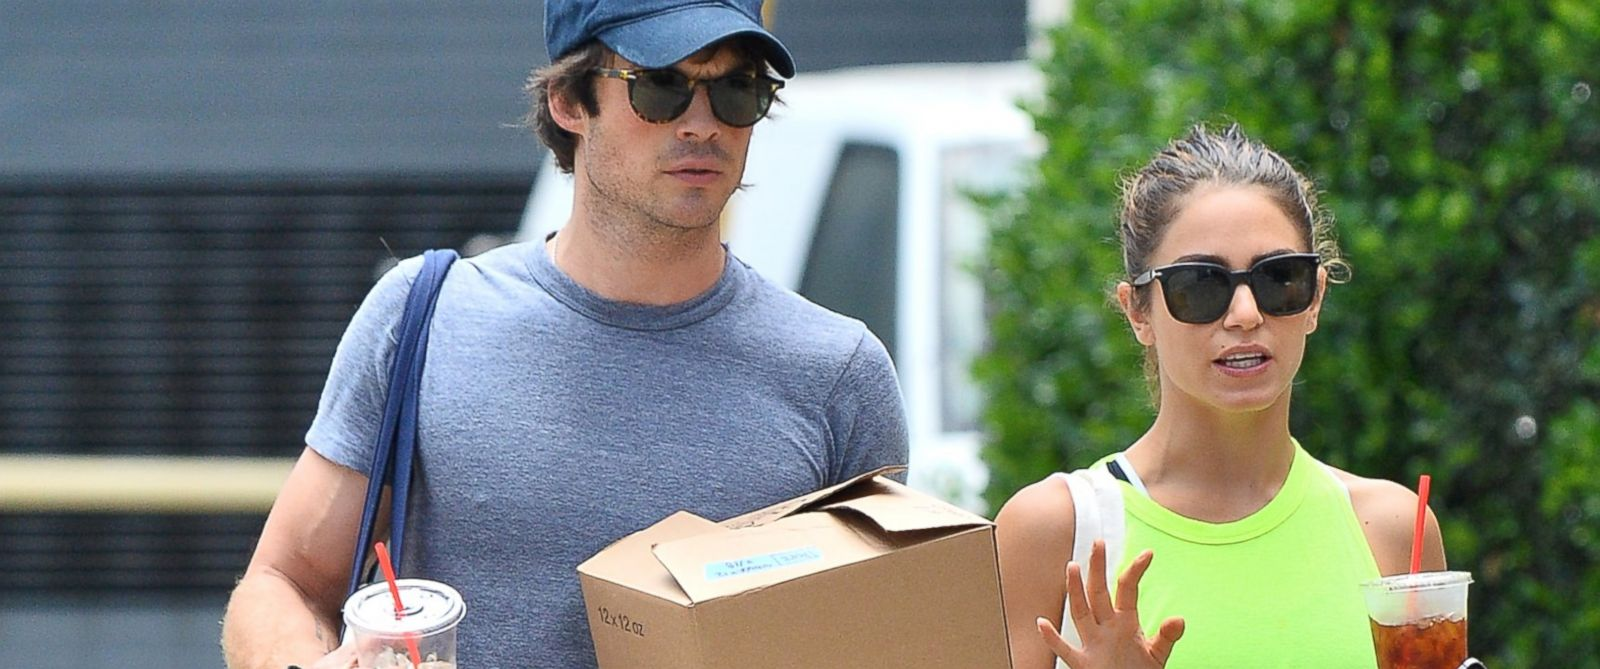 PHOTO: Nikki Reed and rumored new boyfriend Ian Somerhalder hit up the Farmers Market in Studio City.